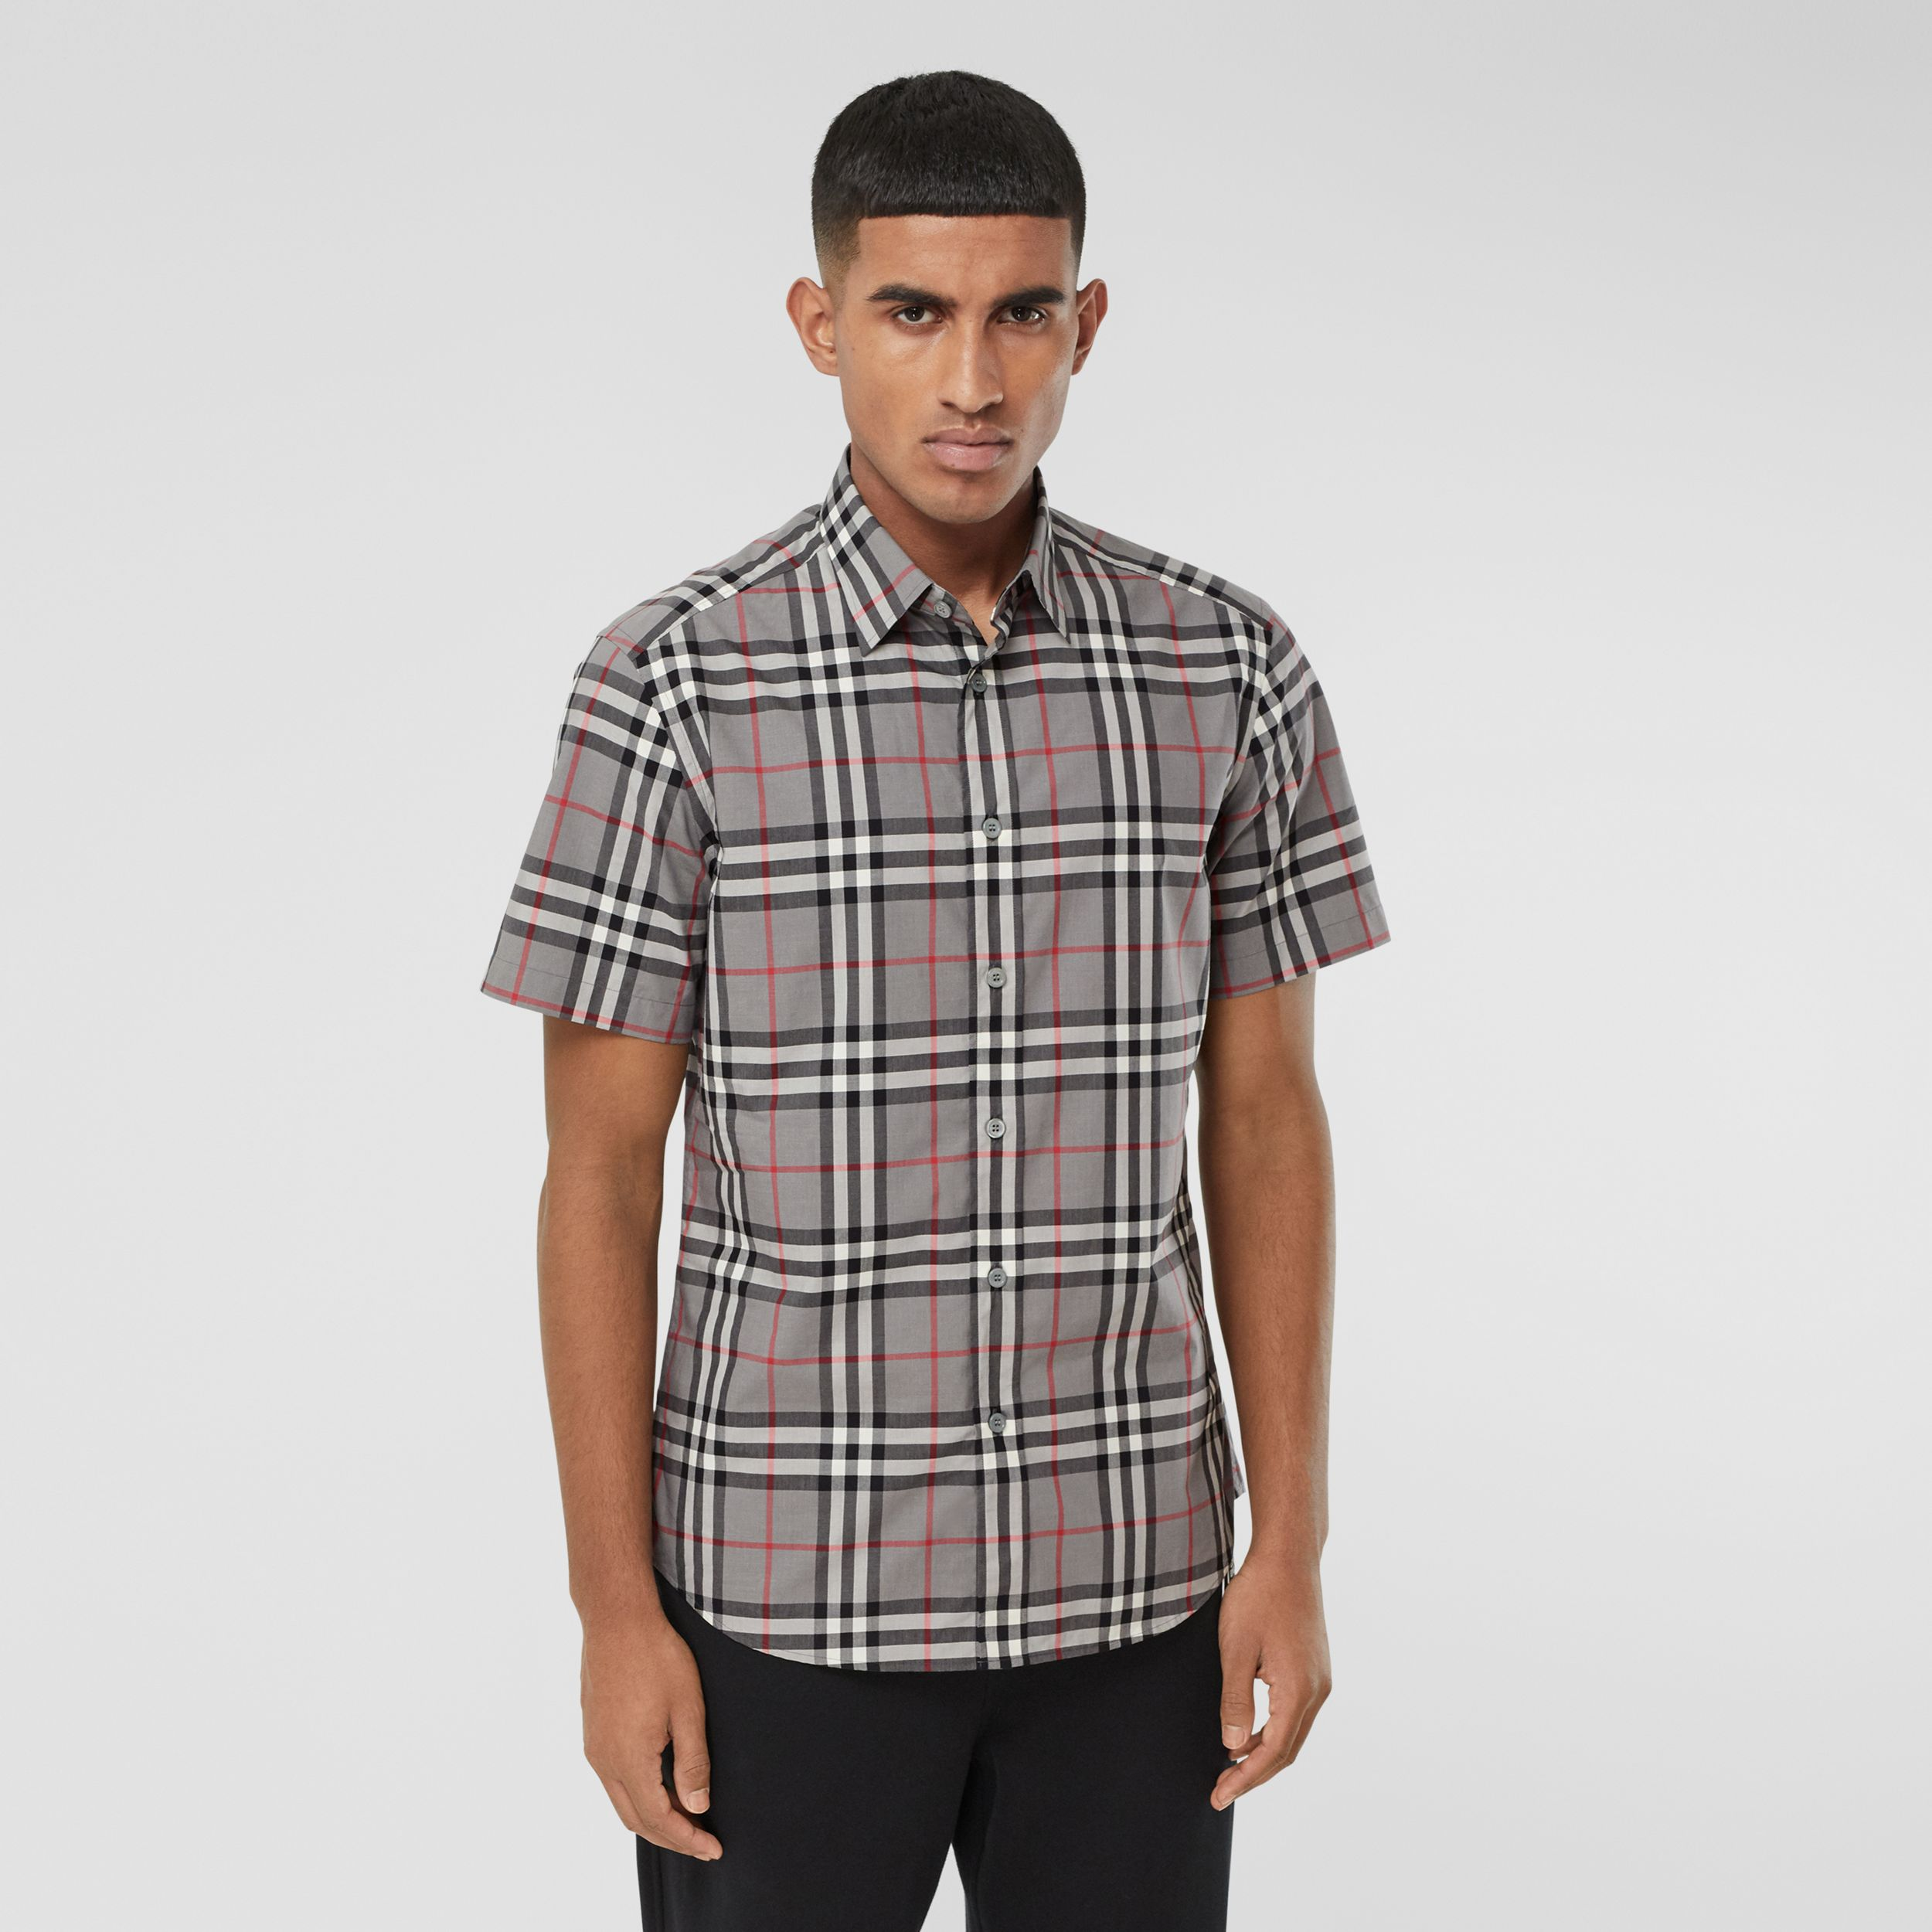 Short-sleeve Check Cotton Poplin Shirt in Storm Grey Melange - Men | Burberry Hong Kong S.A.R. - 1